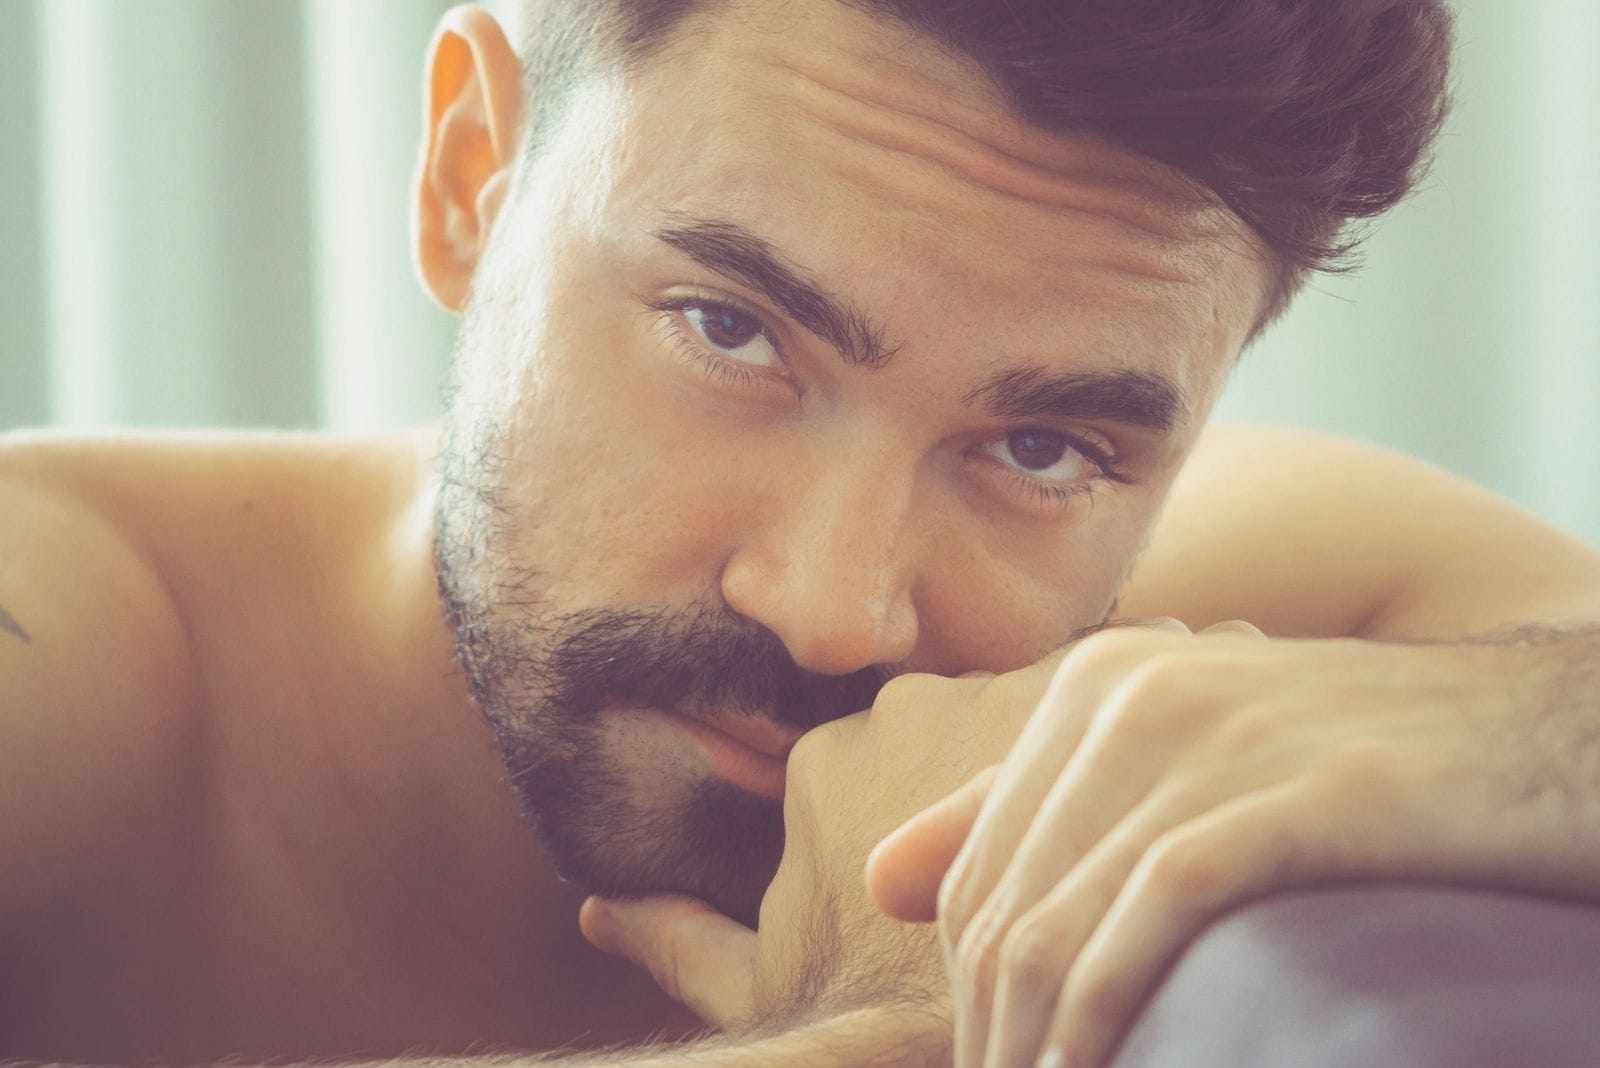 pensive man with beard in close up photography half naked looking at the camera